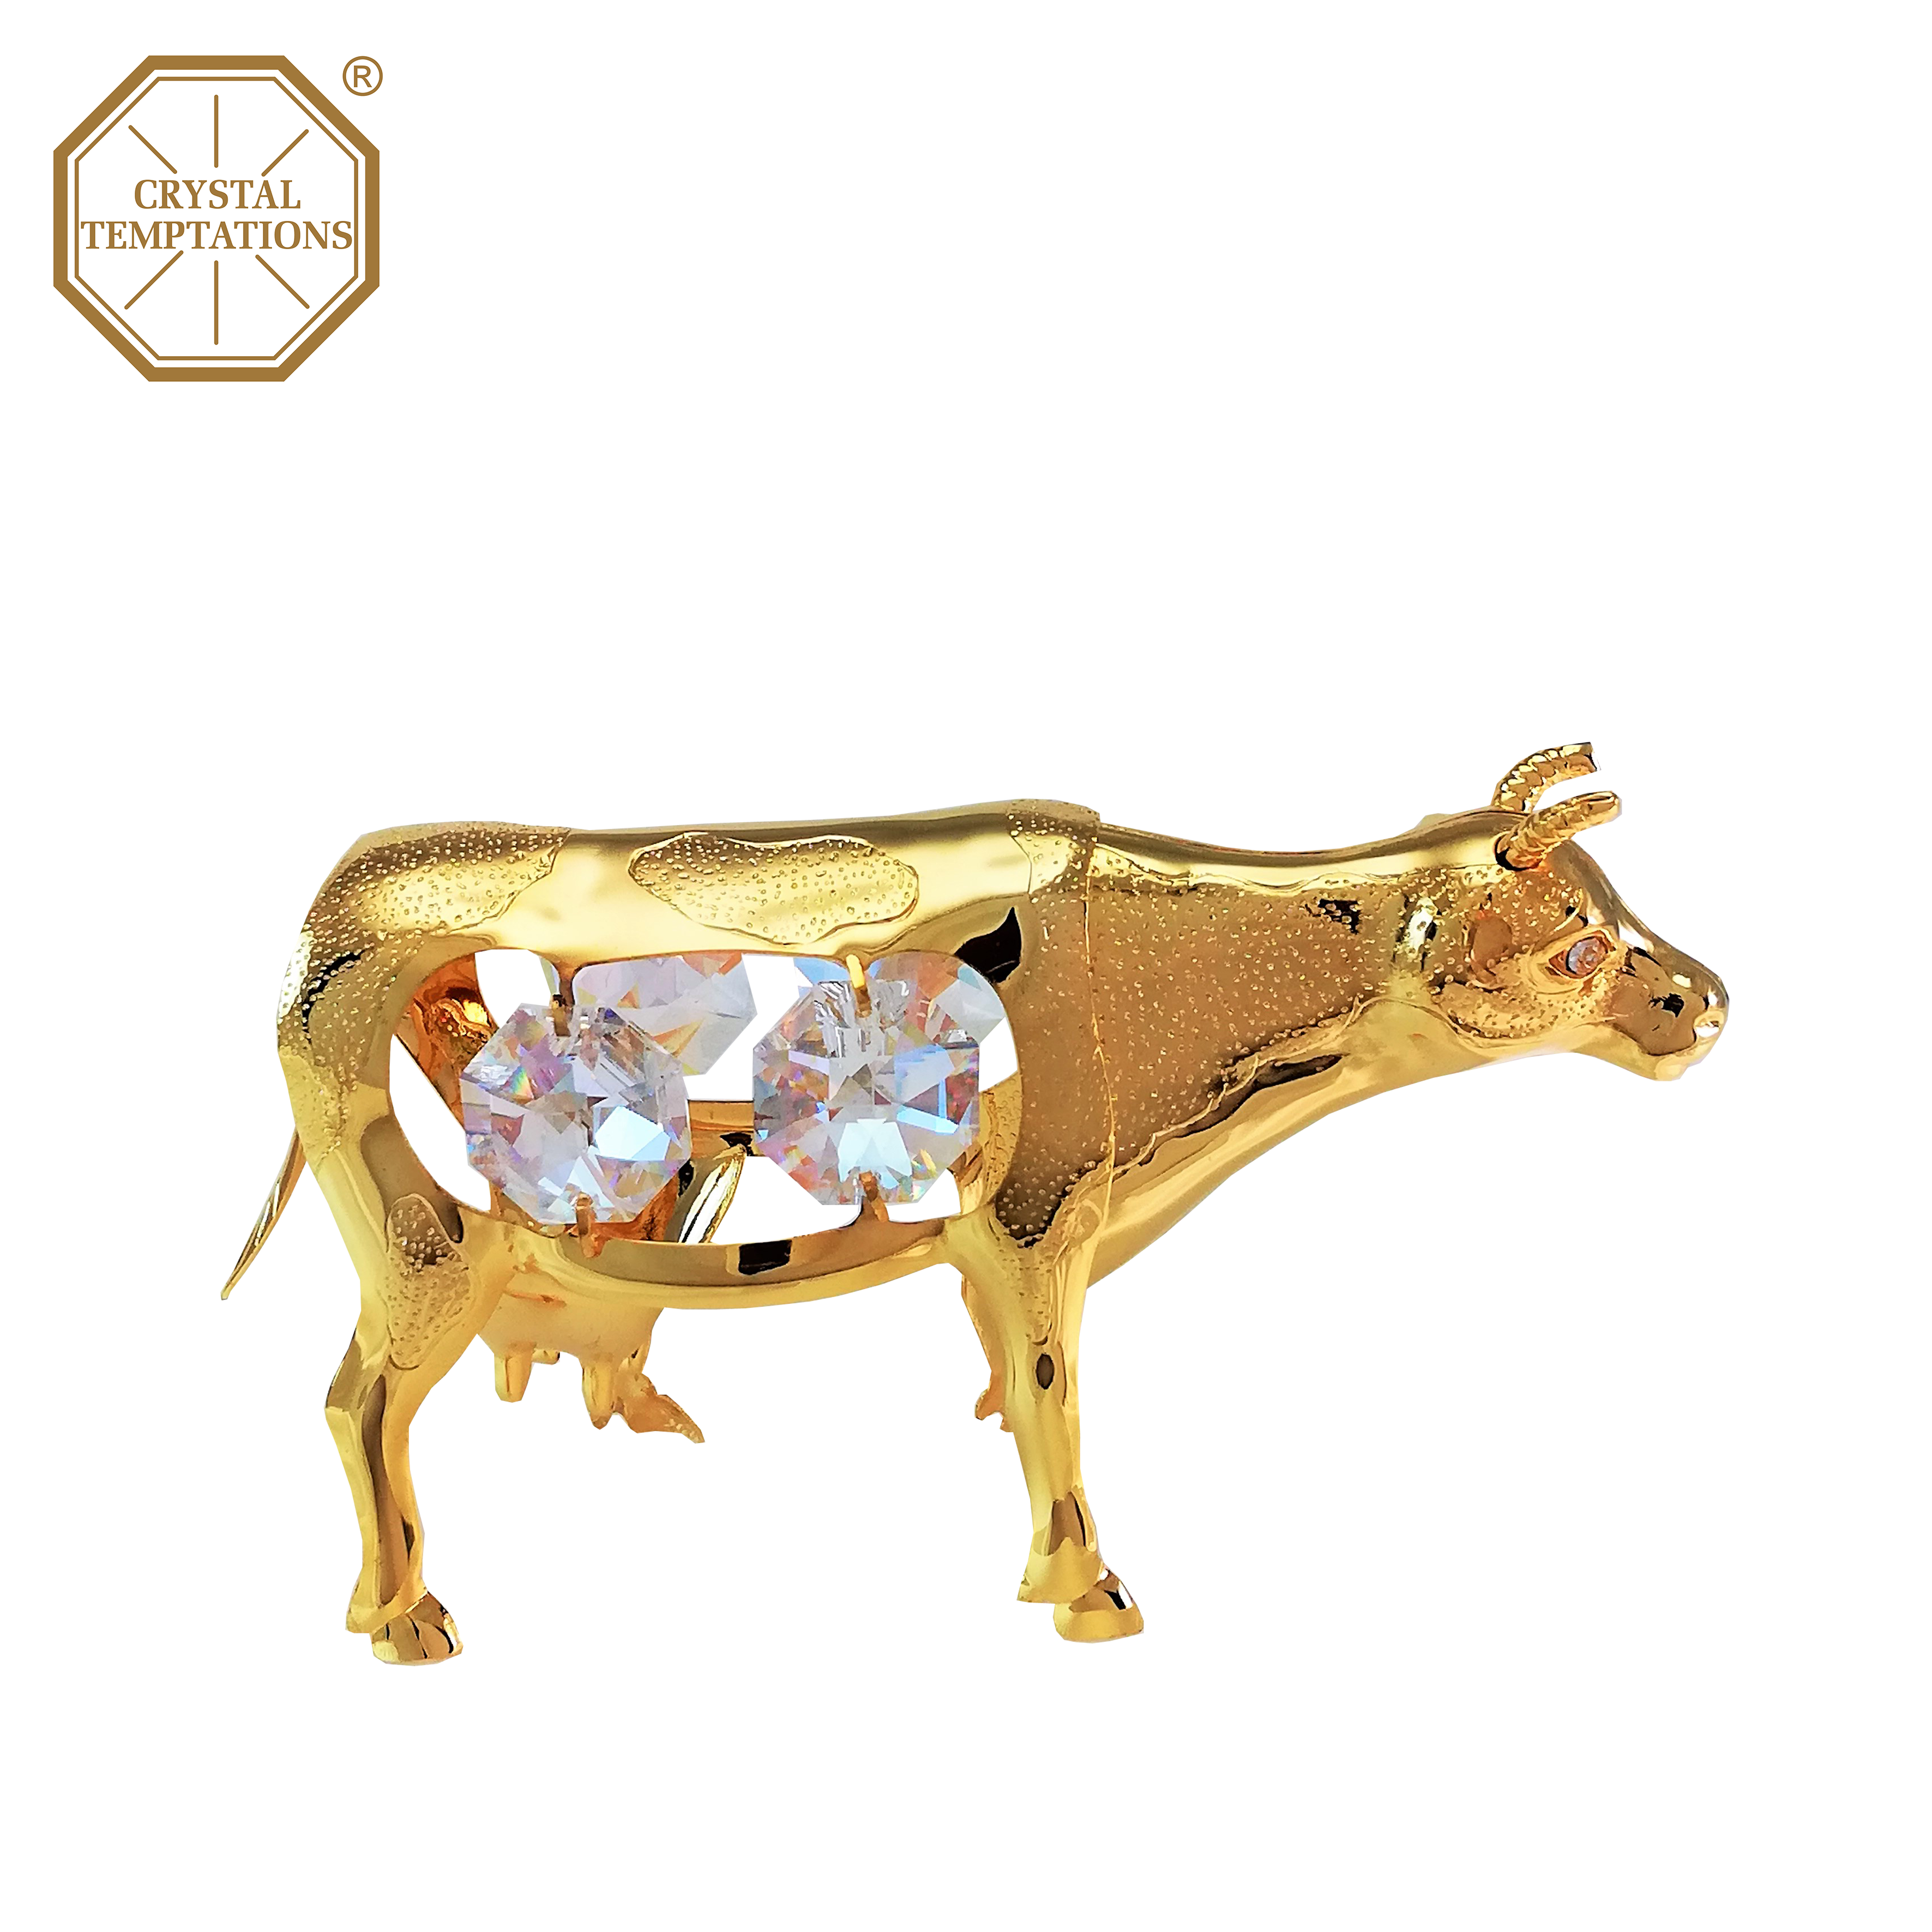 24k Gold Plated Figurine Ox With Swarovski Crystal Crystal Temptations Union Metal Hk